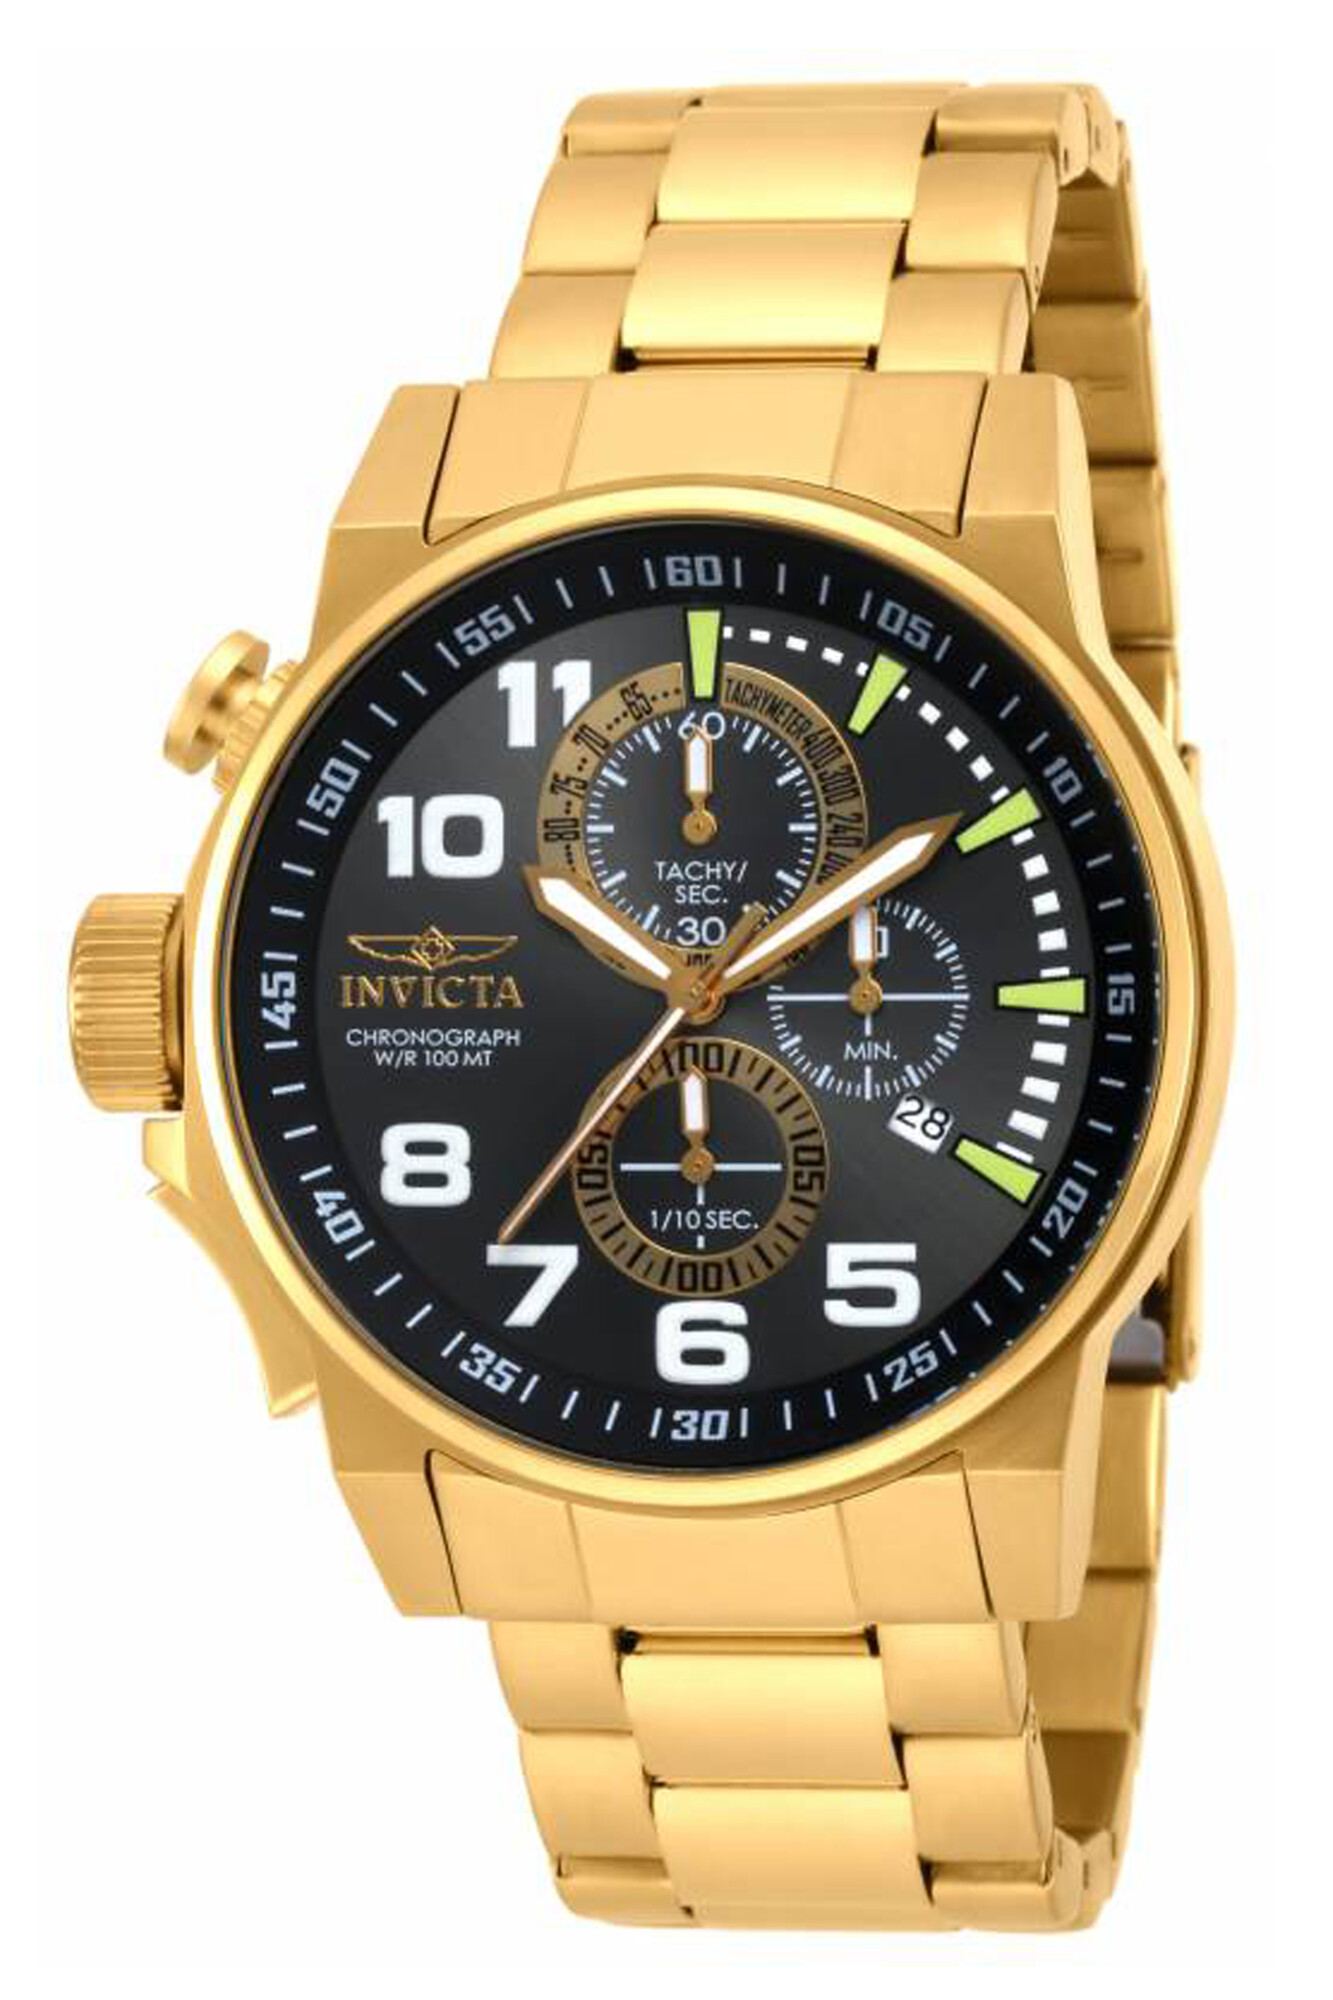 Invicta Men's I-Force 17416 Gold Stainless-Steel Plated Swiss Chronograph Fashion Watch